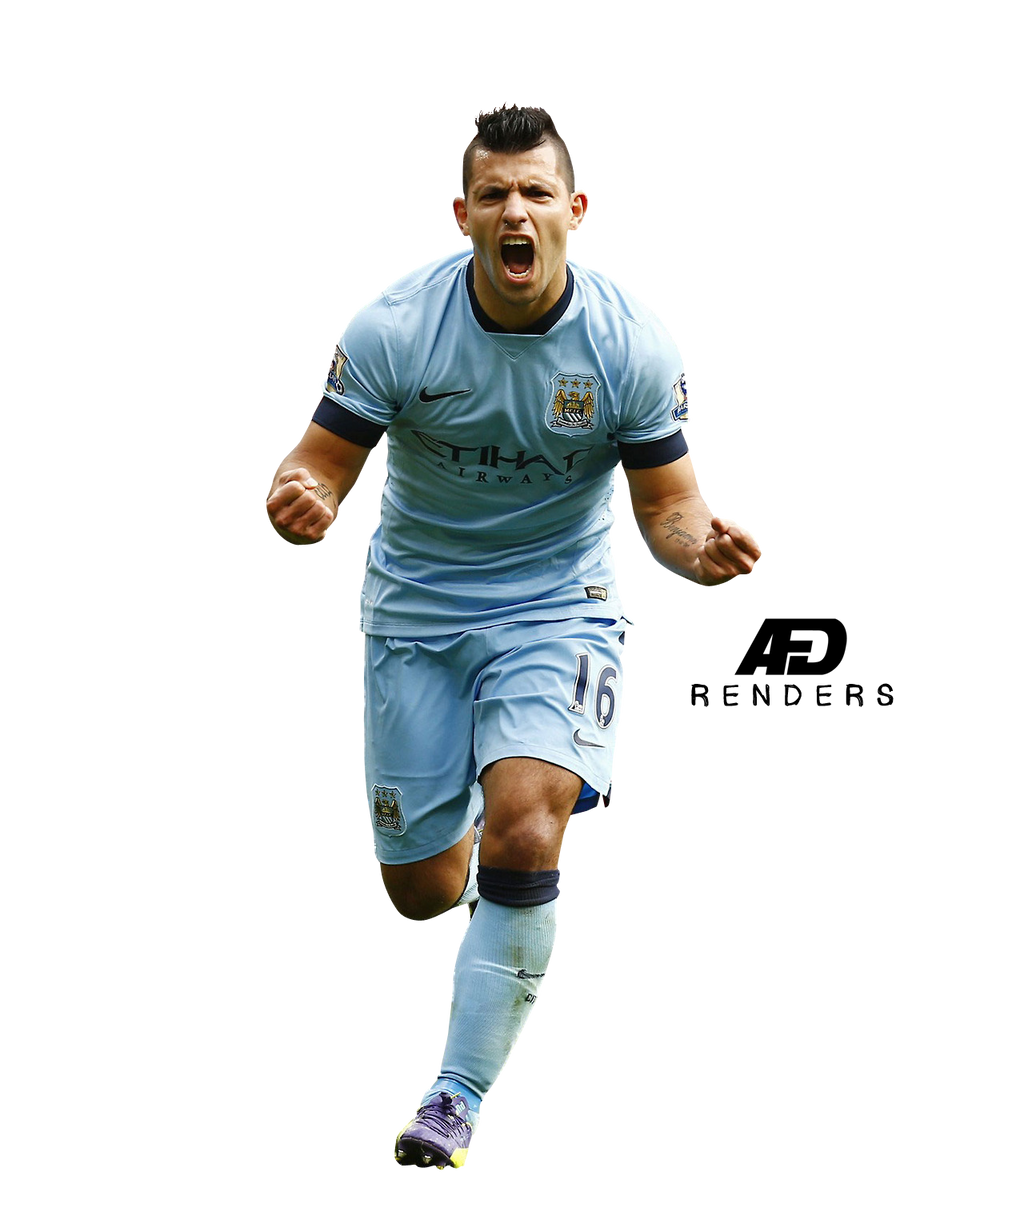 aguero wallpaper 2016